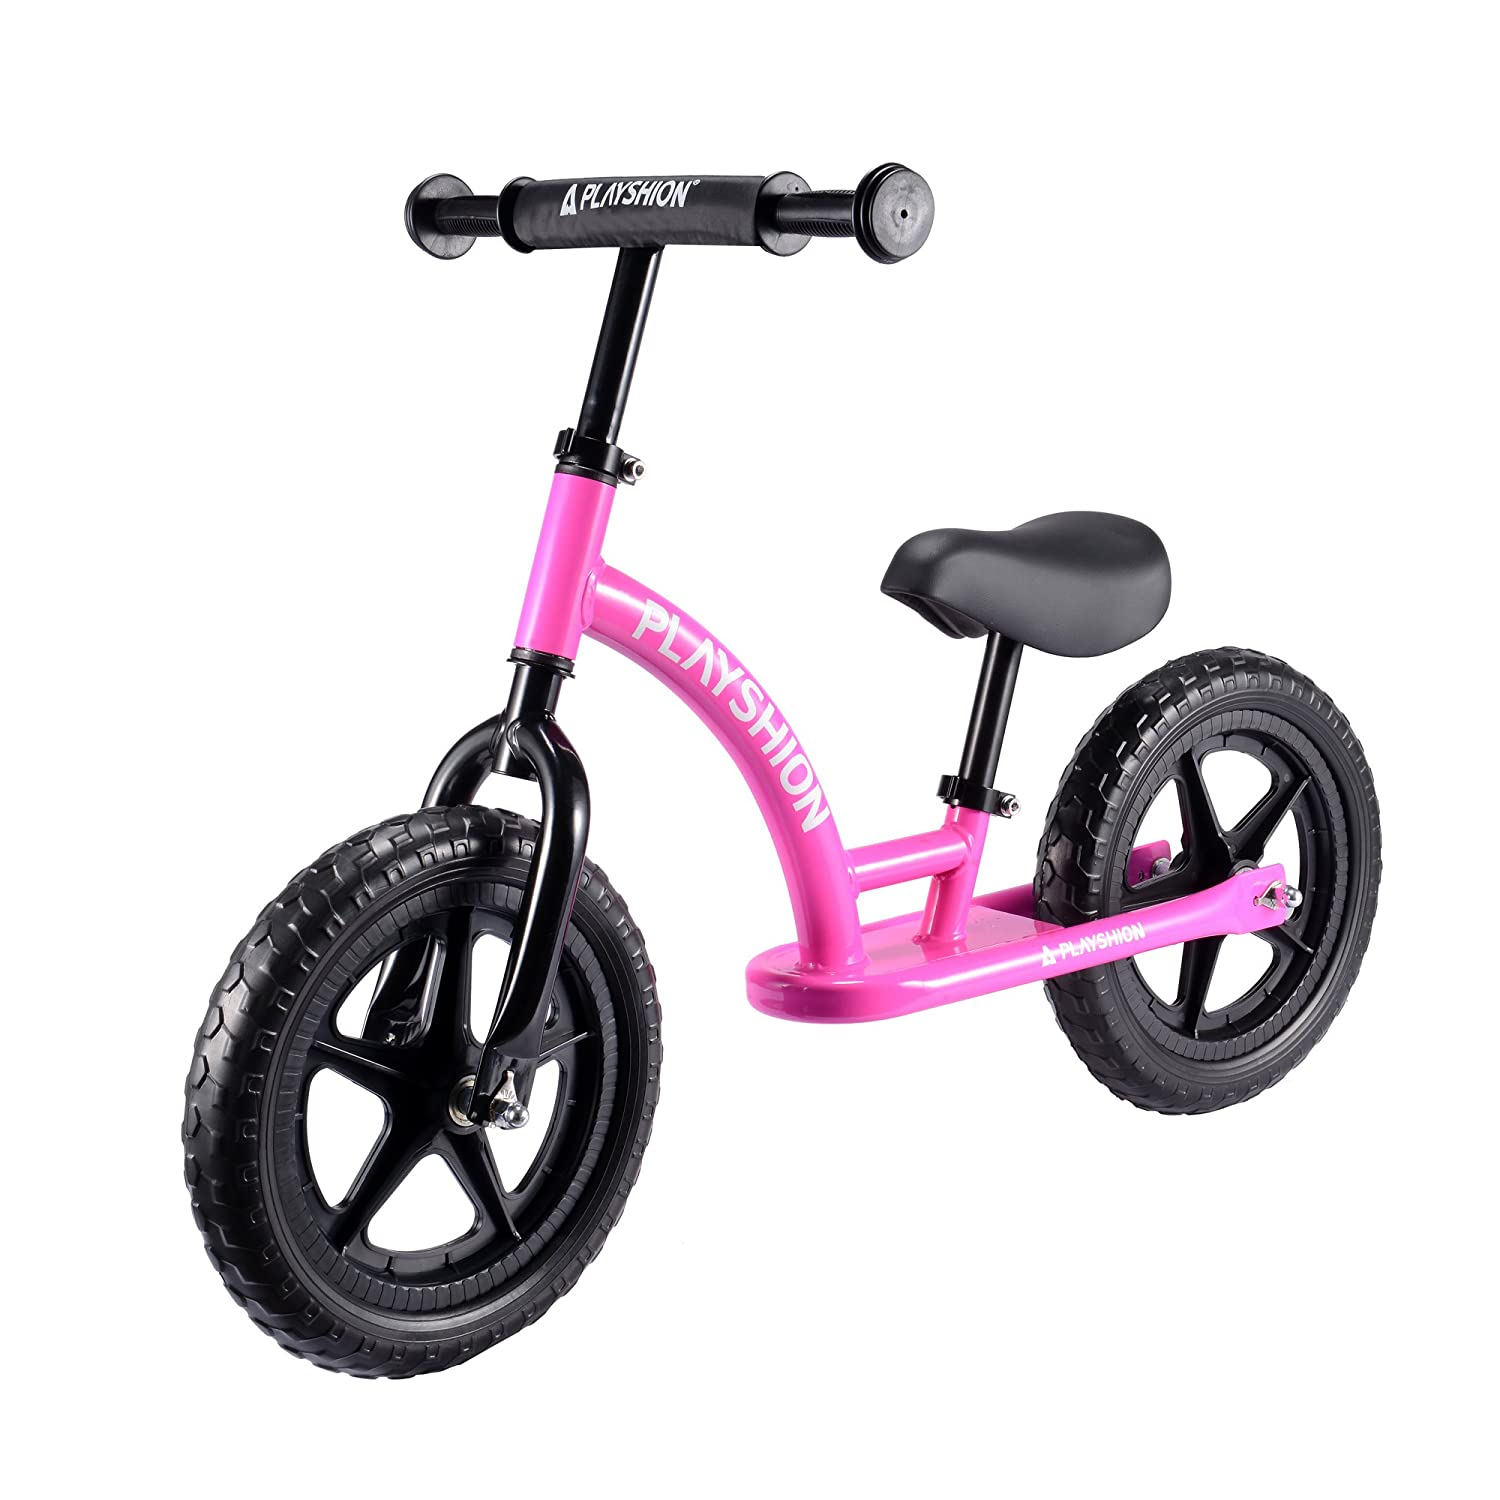 Playshion Kids Balance Bike For Age 18 Months to 5 Years FUNSHION